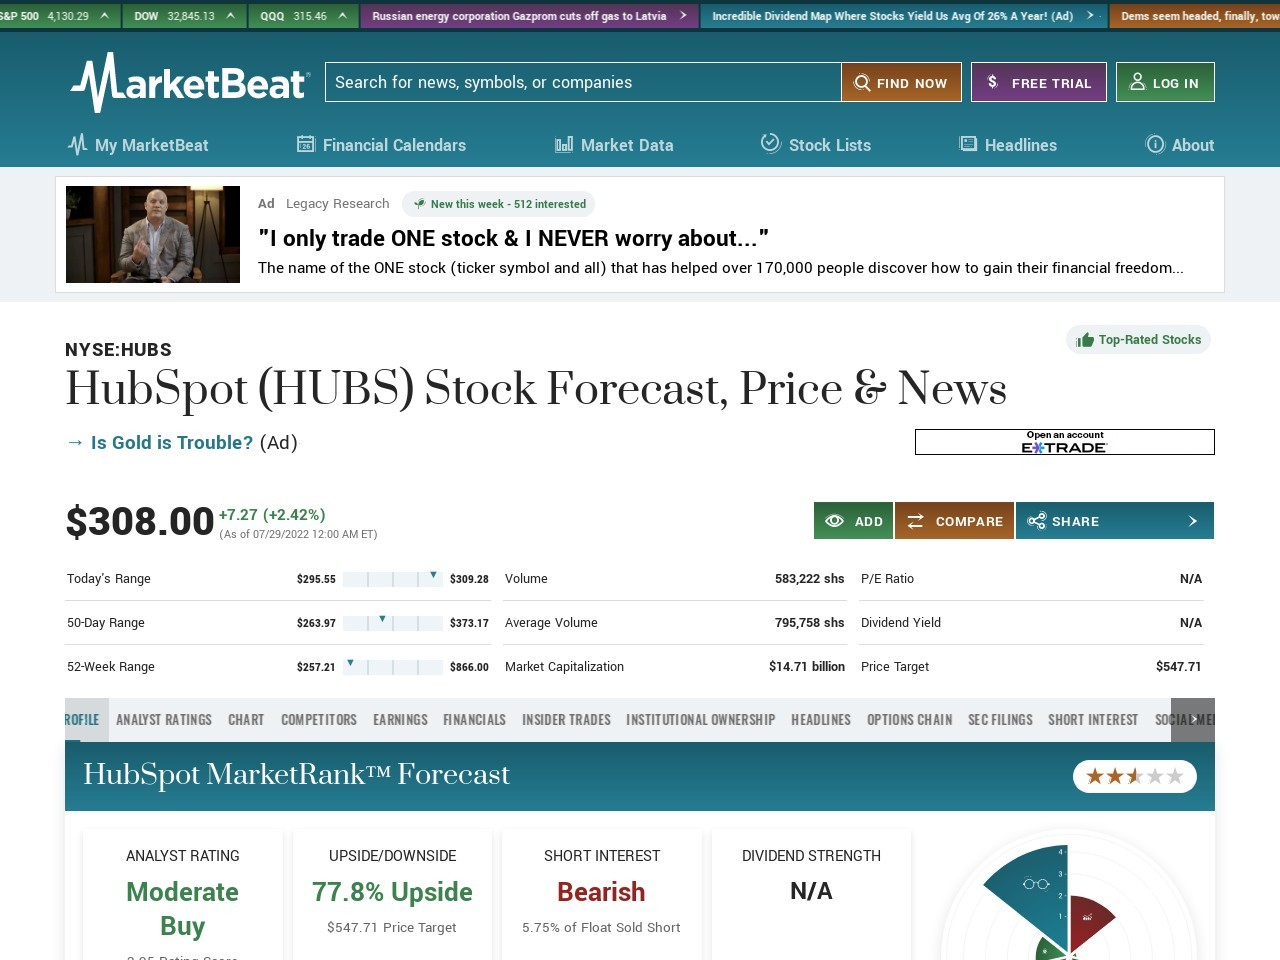 Stacey Bishop Sells 83154 Shares of HubSpot Stock (HUBS)